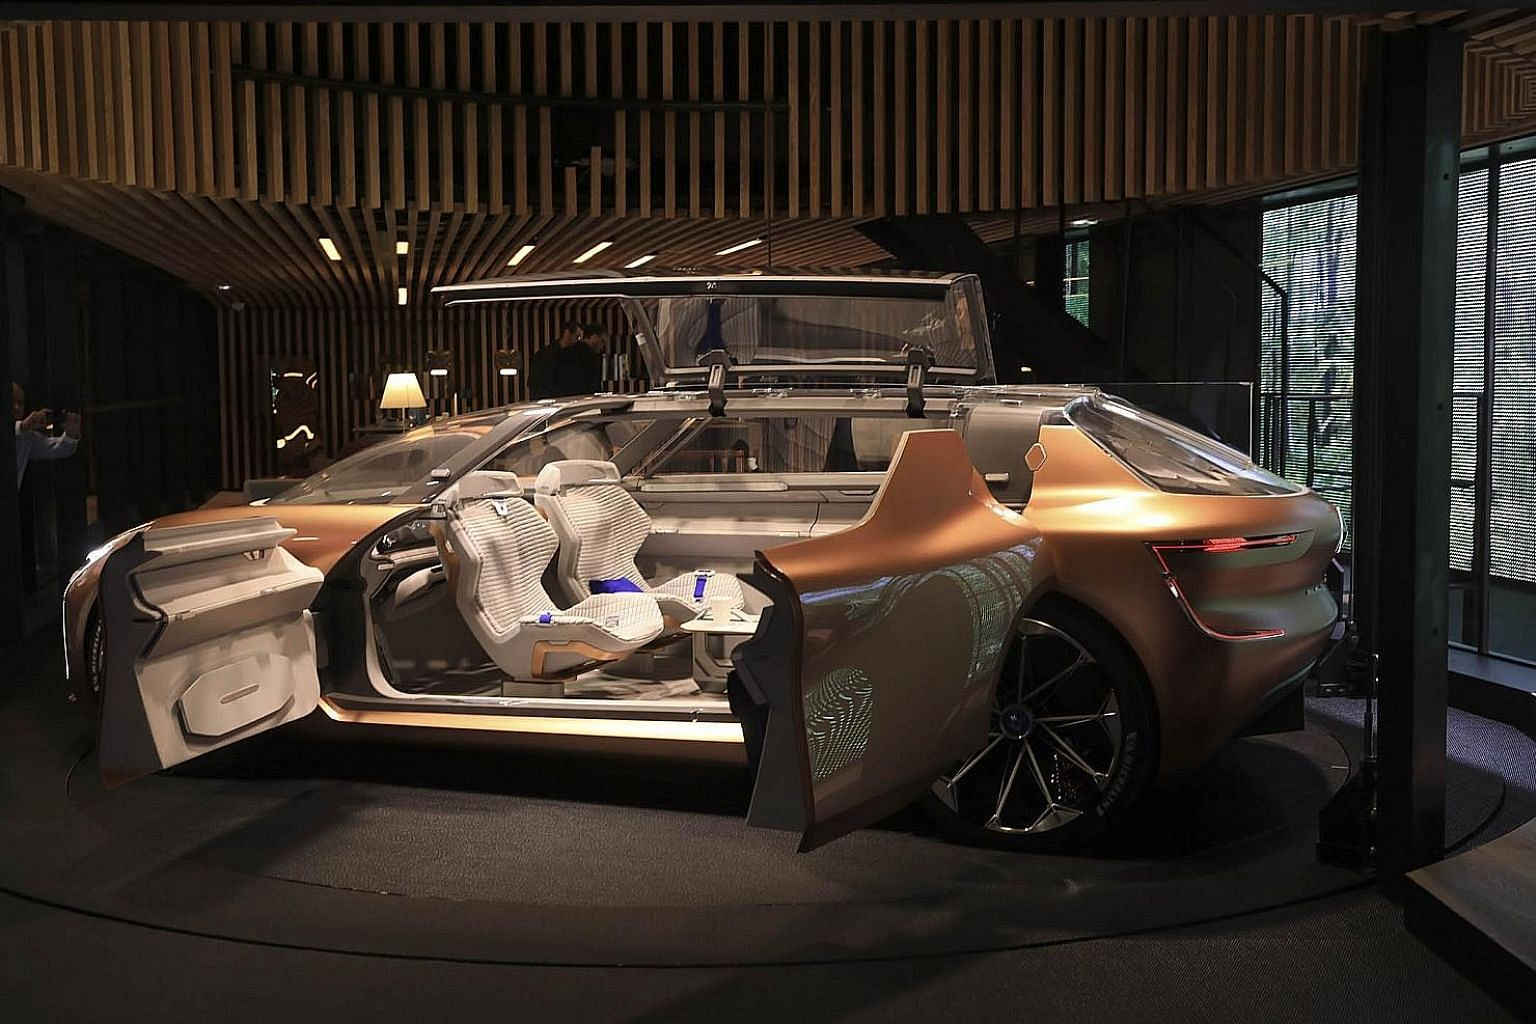 A Renault Symbioz concept car on display at the International Motor Show in Frankfurt last week. The autonomous and electric Symbioz connects wirelessly to home devices and appliances and can function as an additional room when not in use.